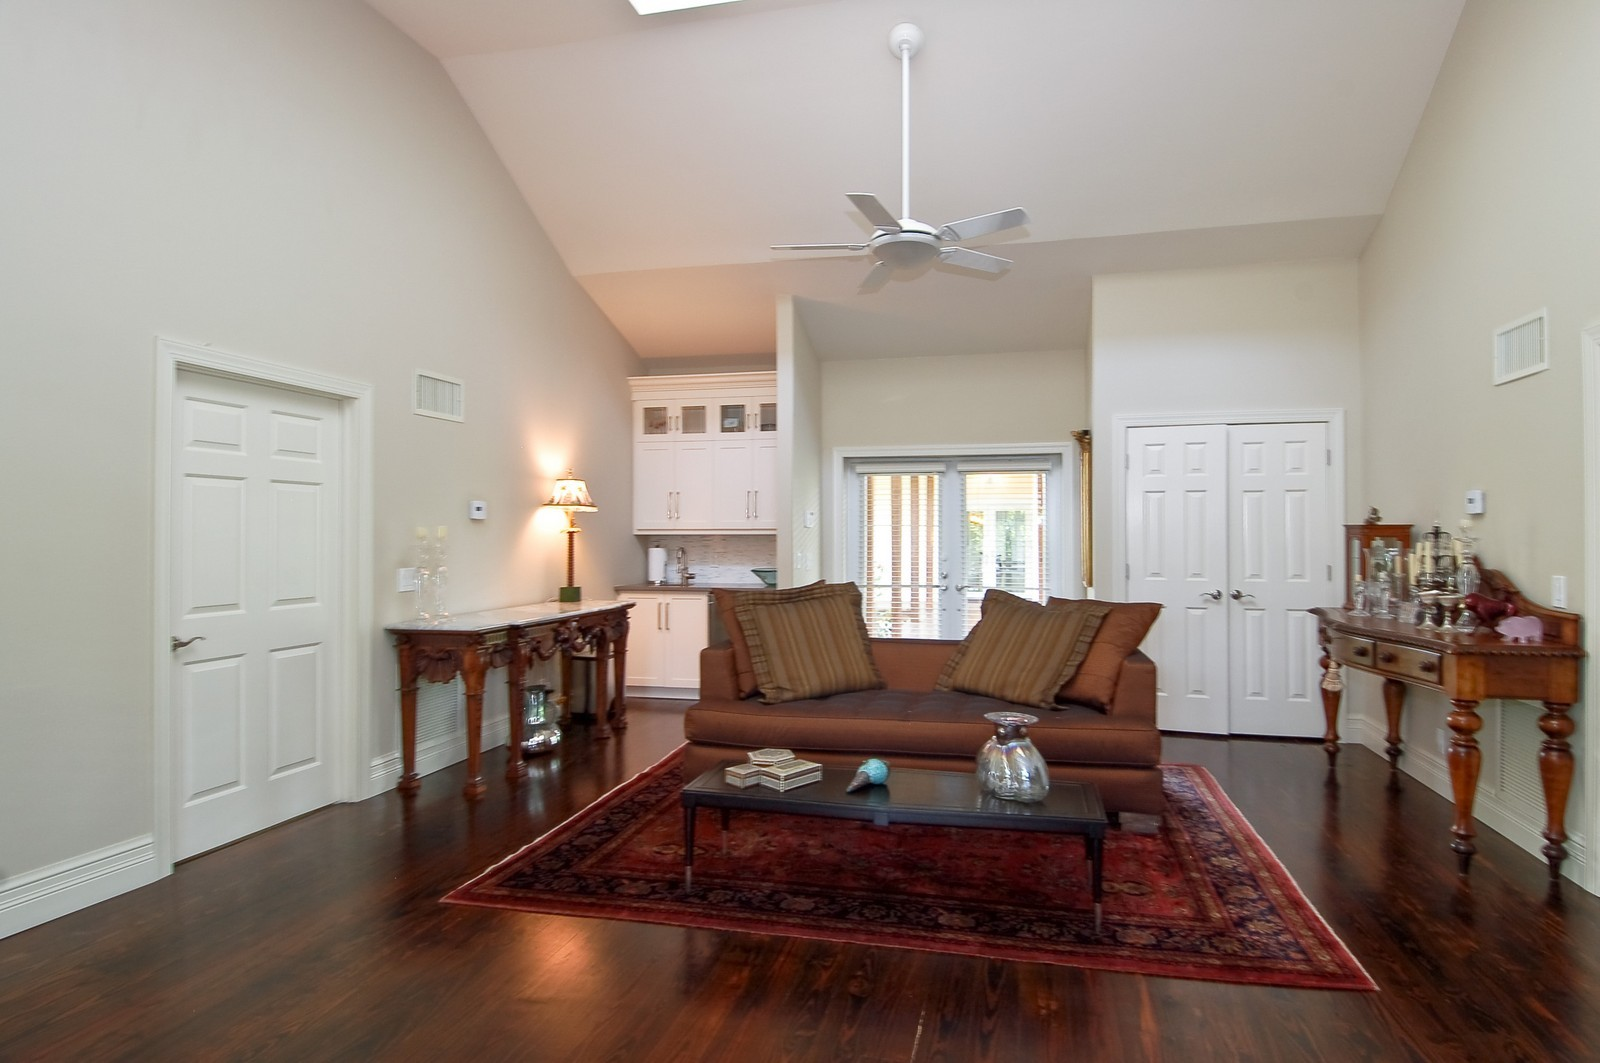 Real Estate Photography - 12800 SW 33RD DRIVE, DAVIE, FL, 33330 - Guest House Living Room